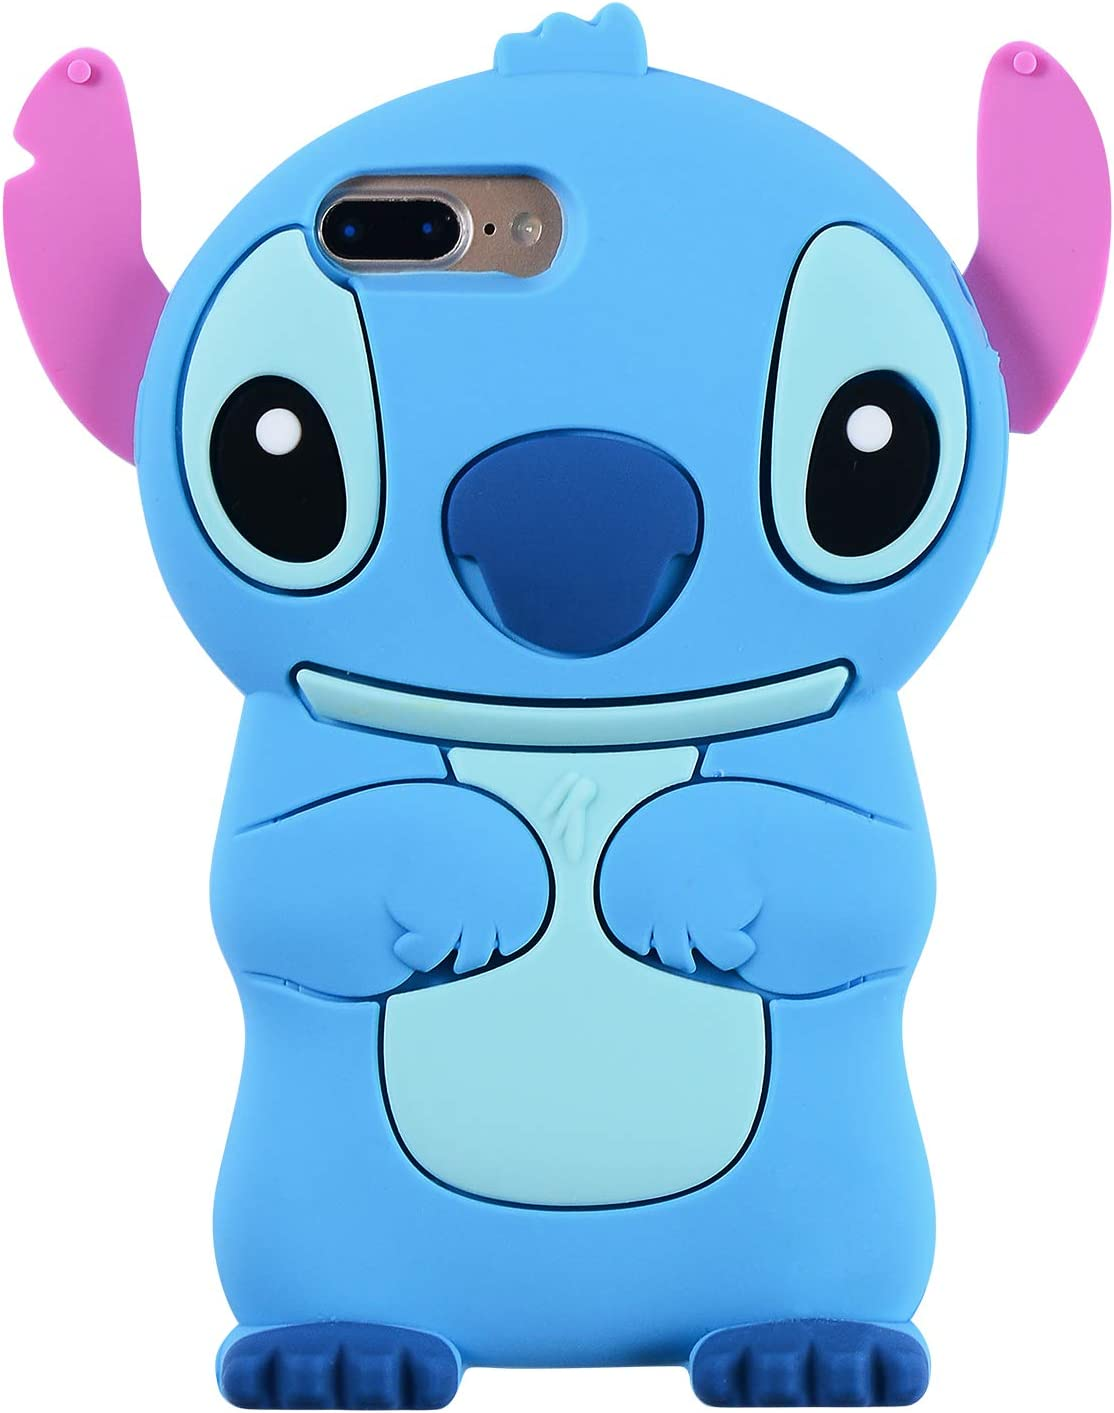 Blue Stitch Case for iPhone 6/ 6S 4.7